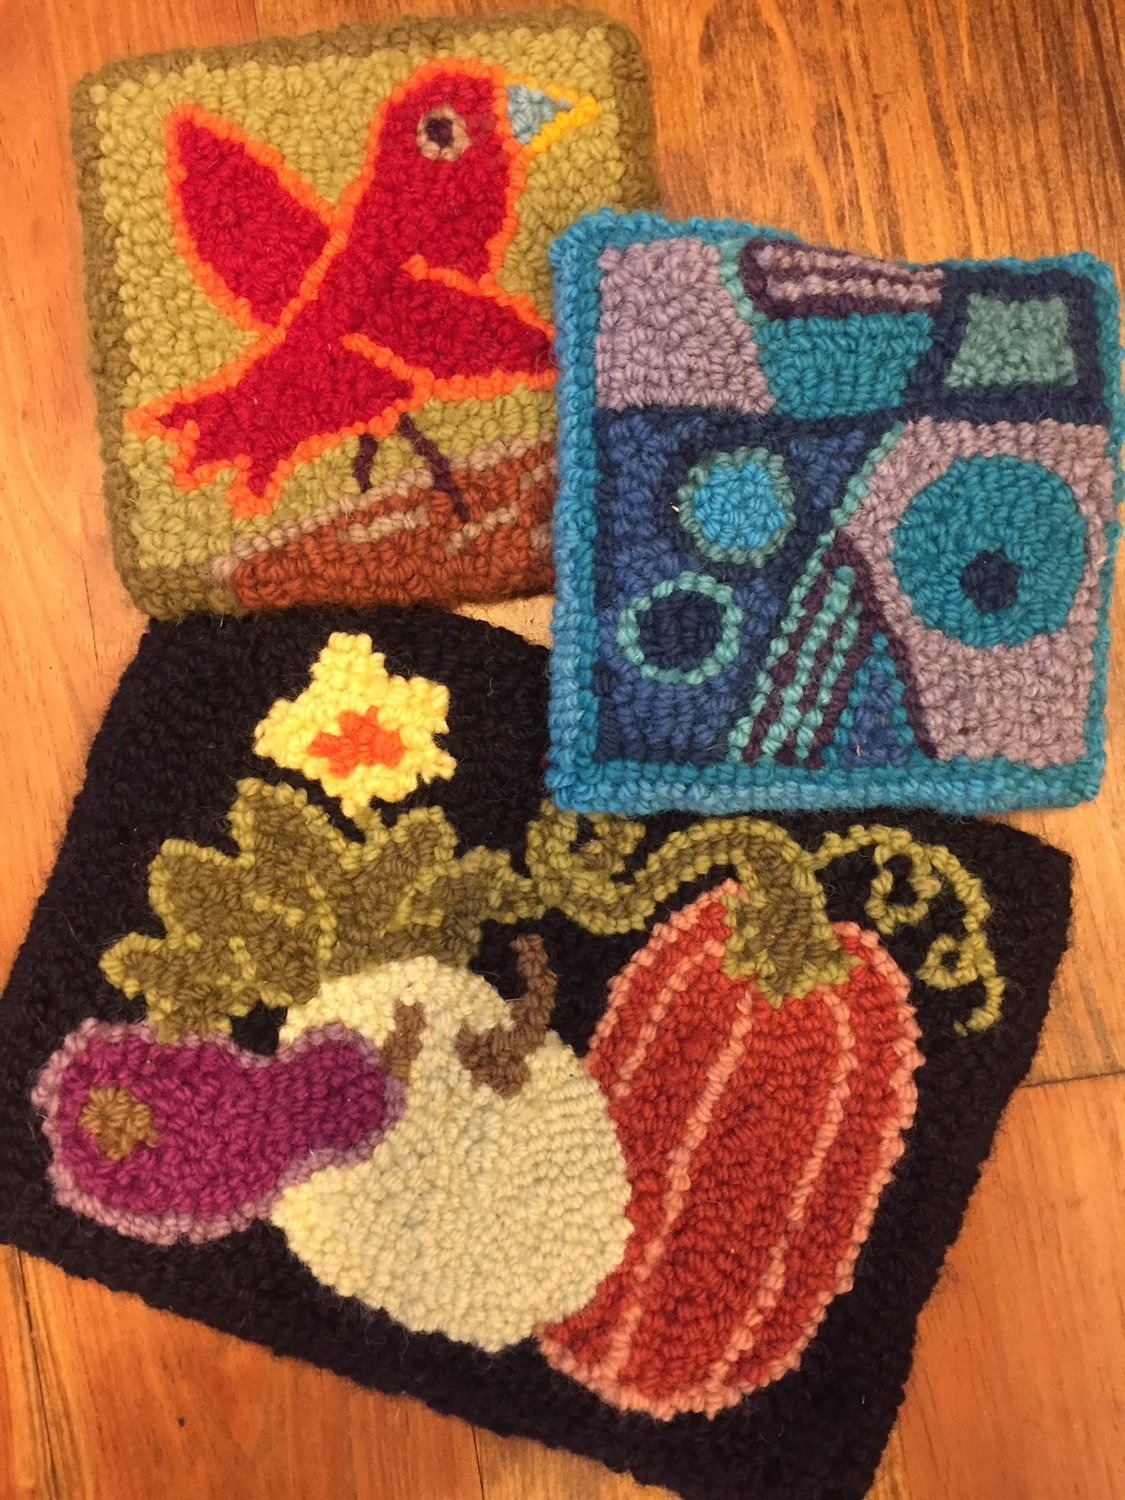 Punch Needle Rug Hooking Workshop with Holly Berry